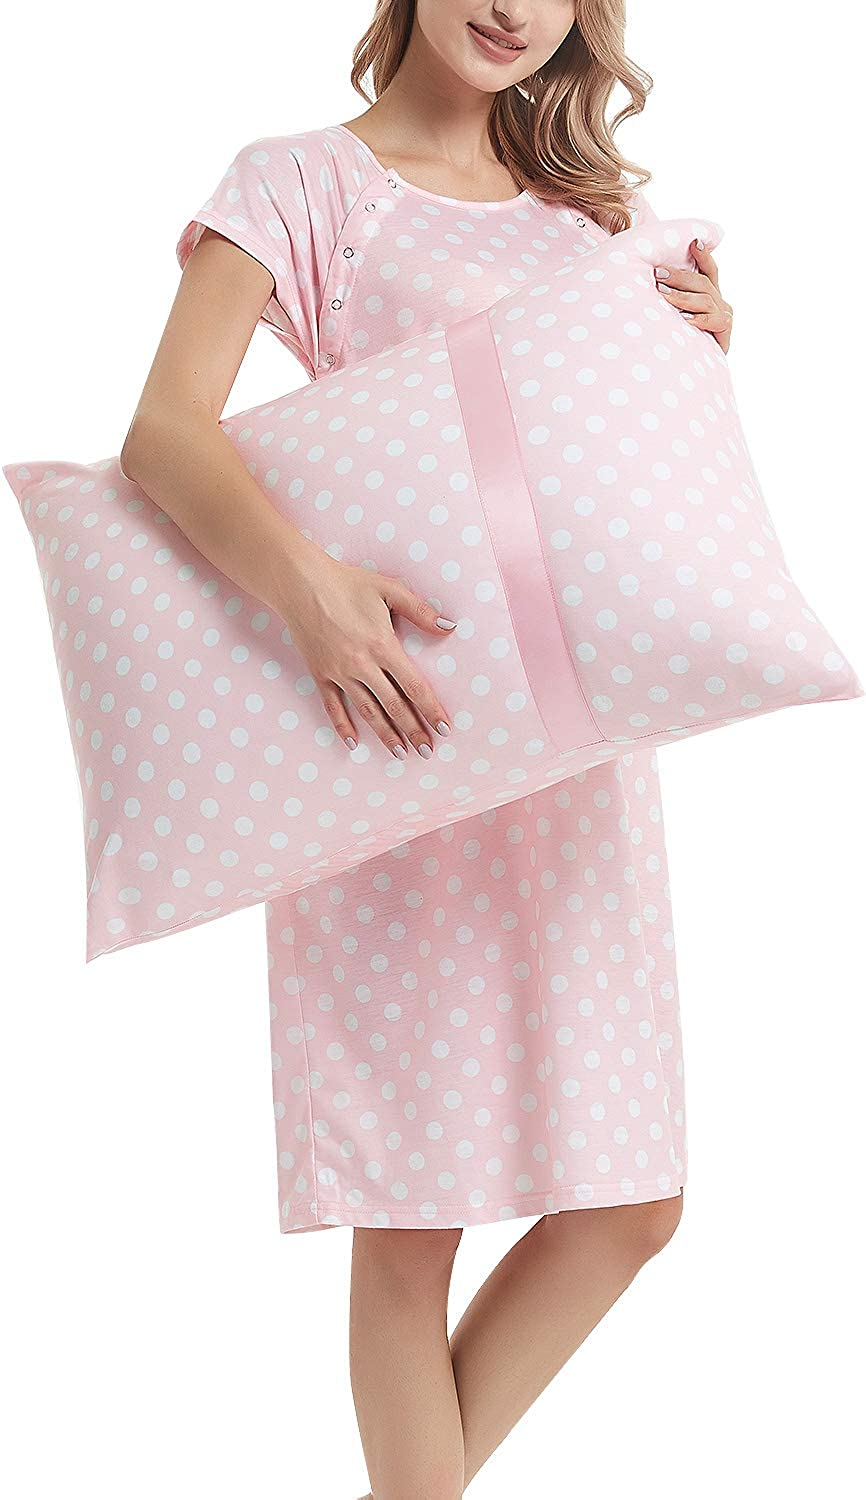 Maternity Labor Delivery Gown Hospital Nightgown Nursing Nightdress with Matching Pillowcase